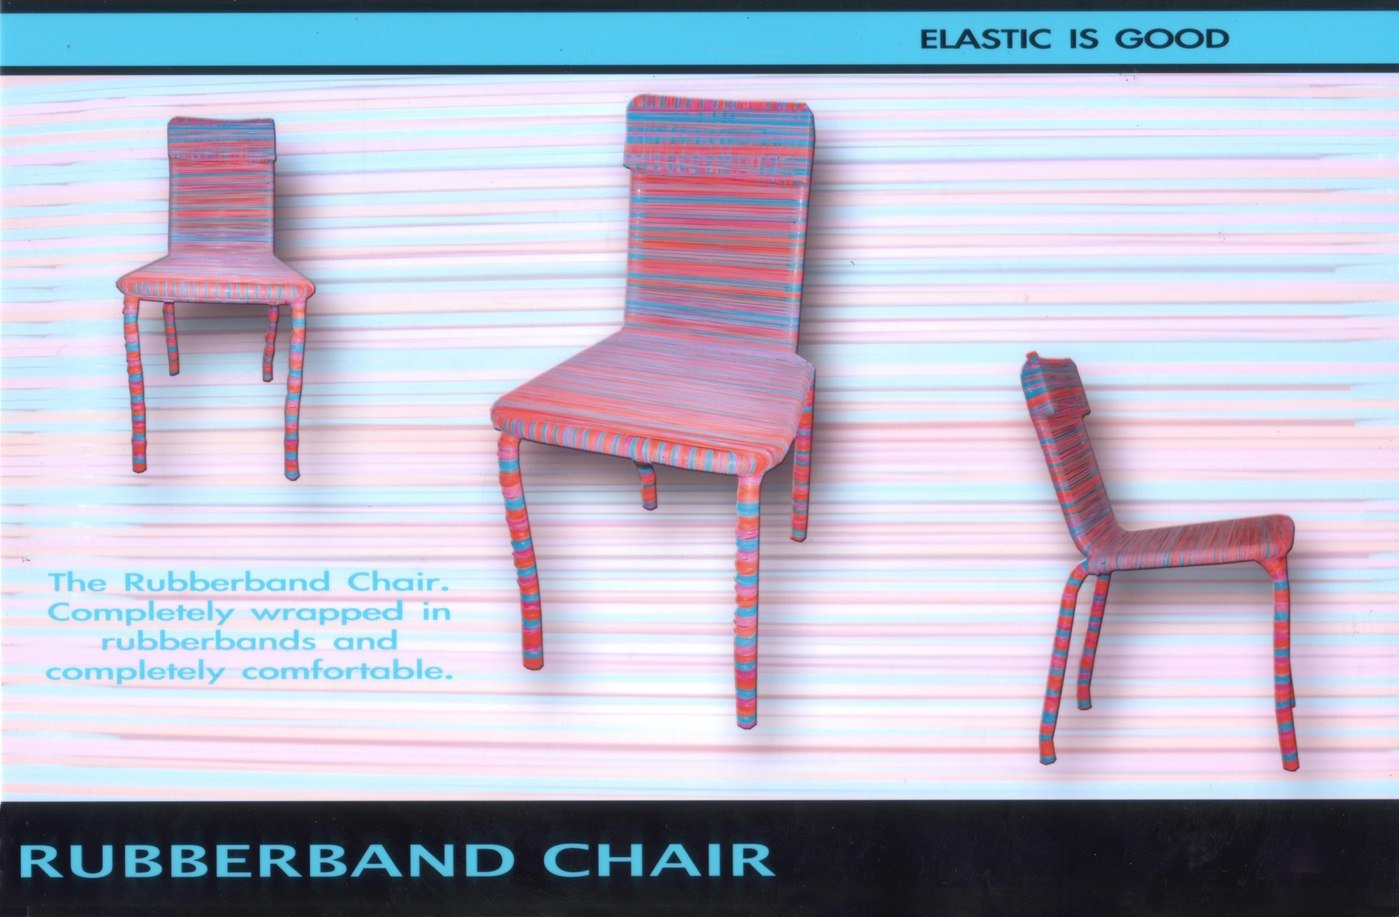 chair experimental design white plastic lawn chairs target harrington project rubberband